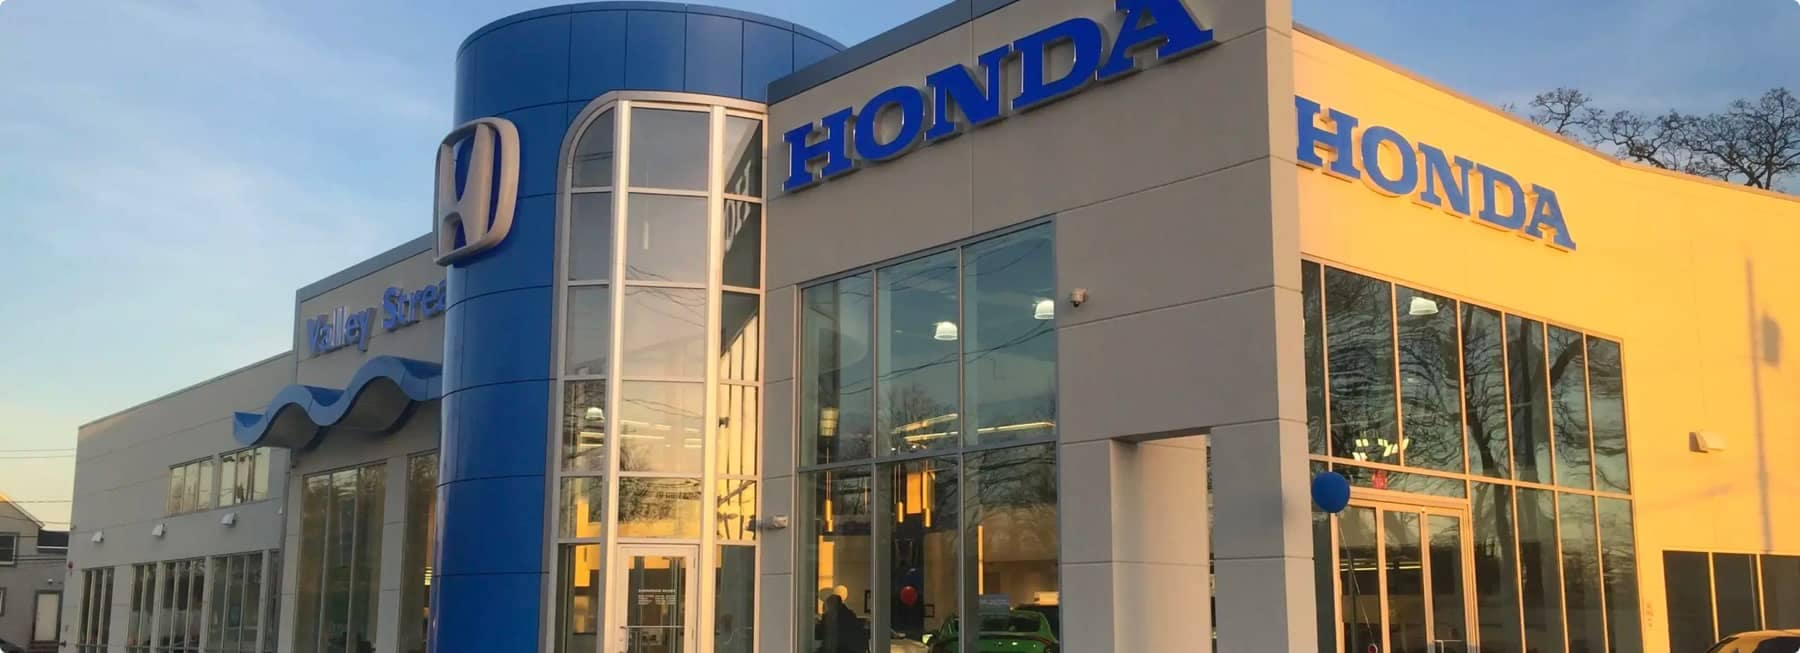 An exterior shot of a Honda dealership during the day